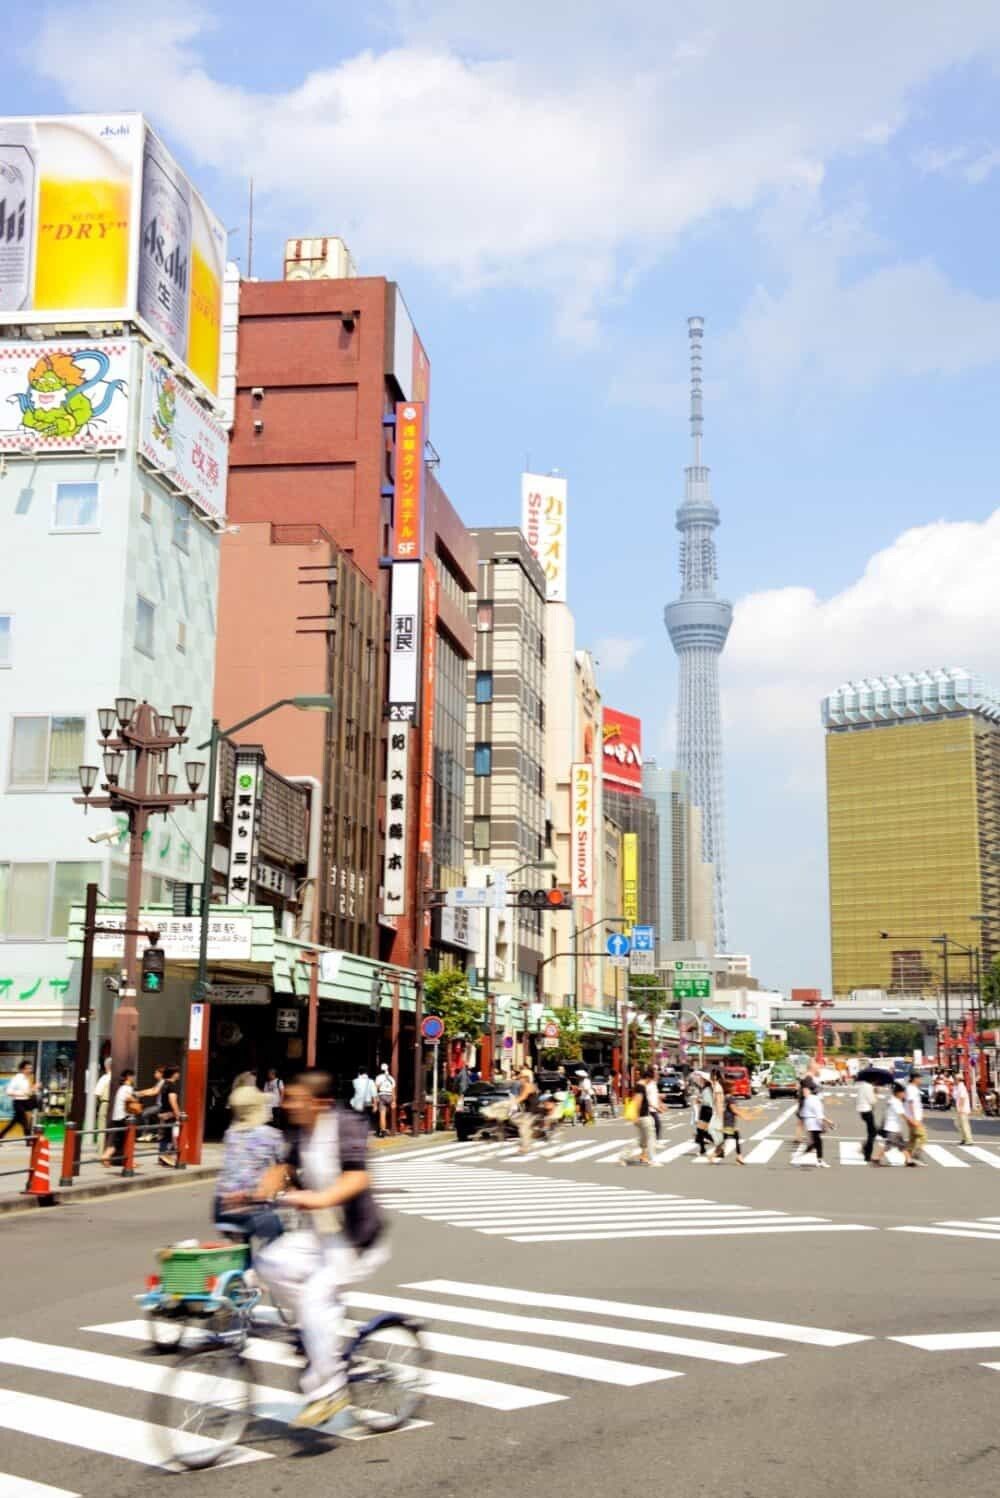 Downtown near Asakusa with the giant Tokyo Skytree looking like a sci-fi movie backdrop.